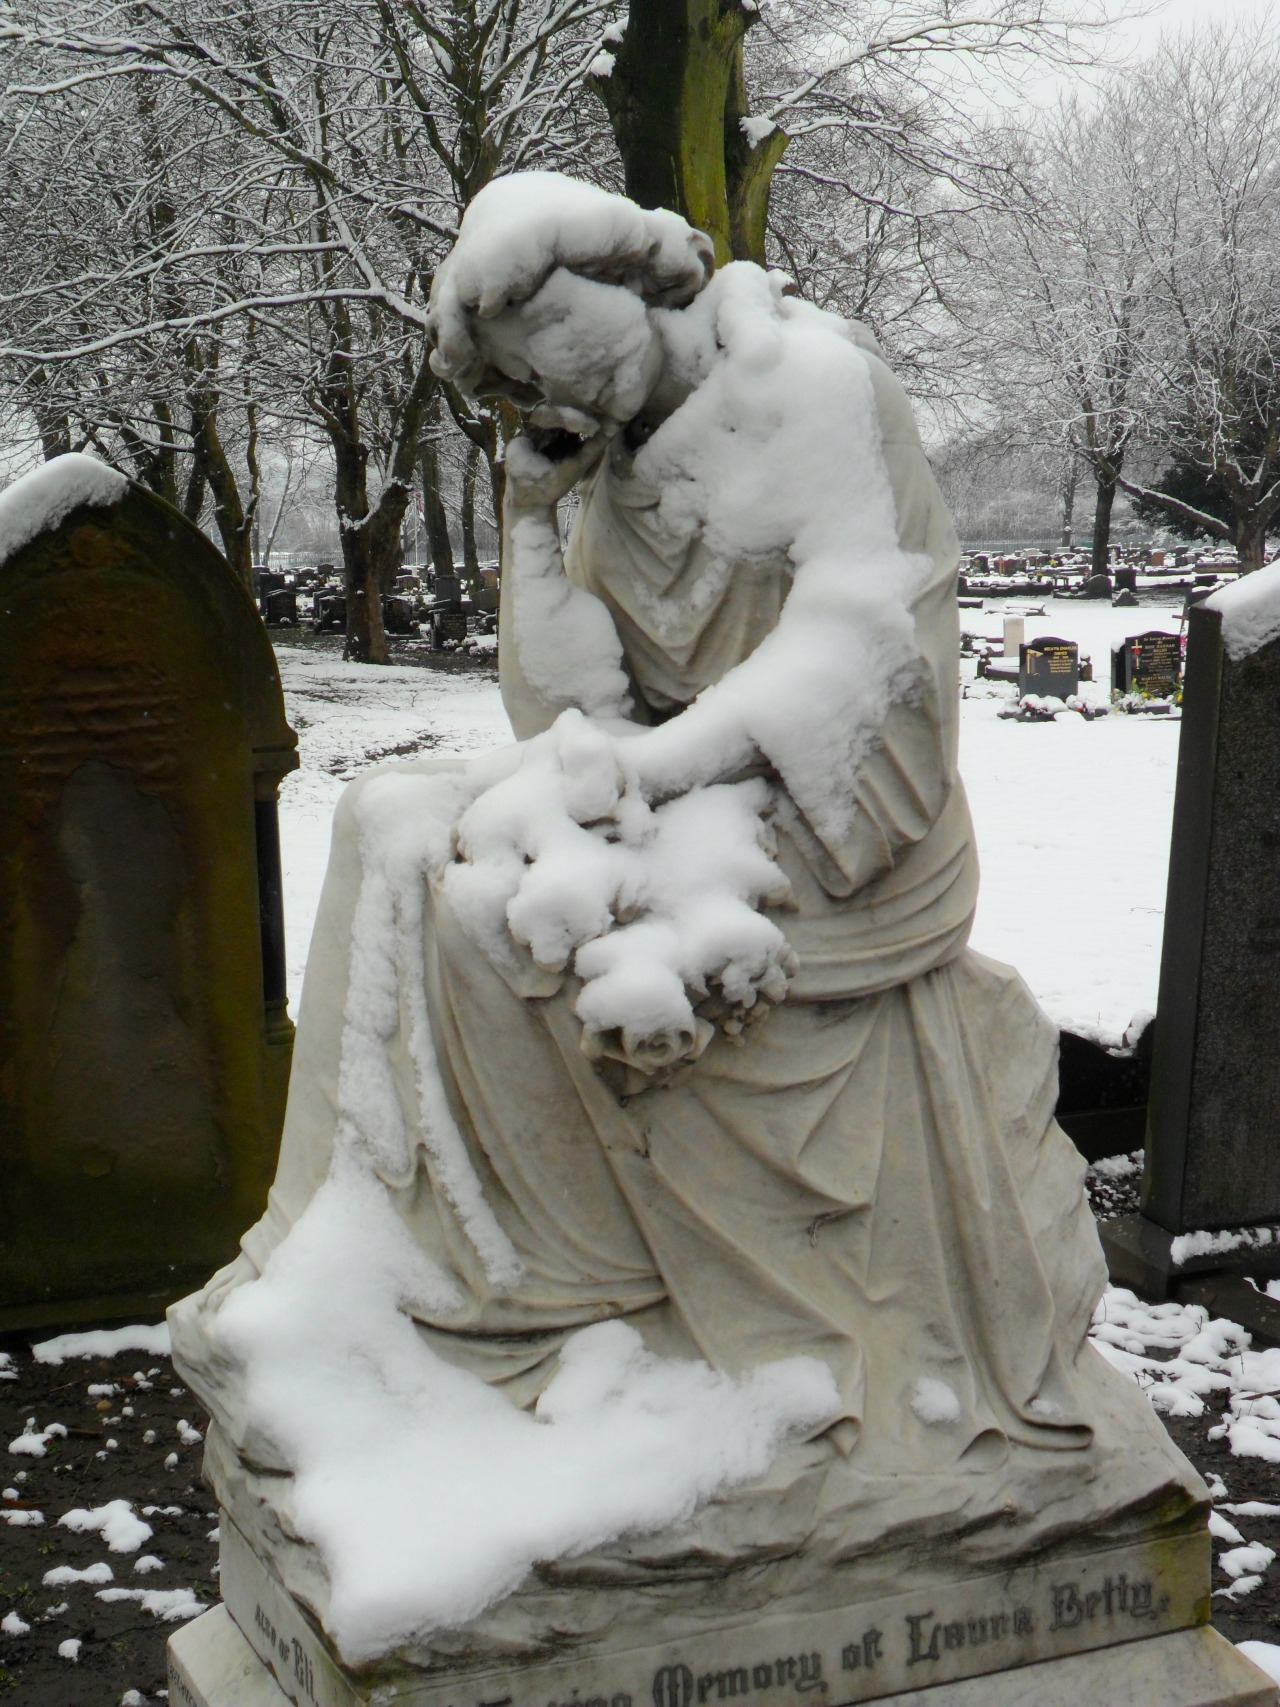 Sad snow covered Victorian grave statue, Tipton Cemetery, Tipton, West Midlands, England.